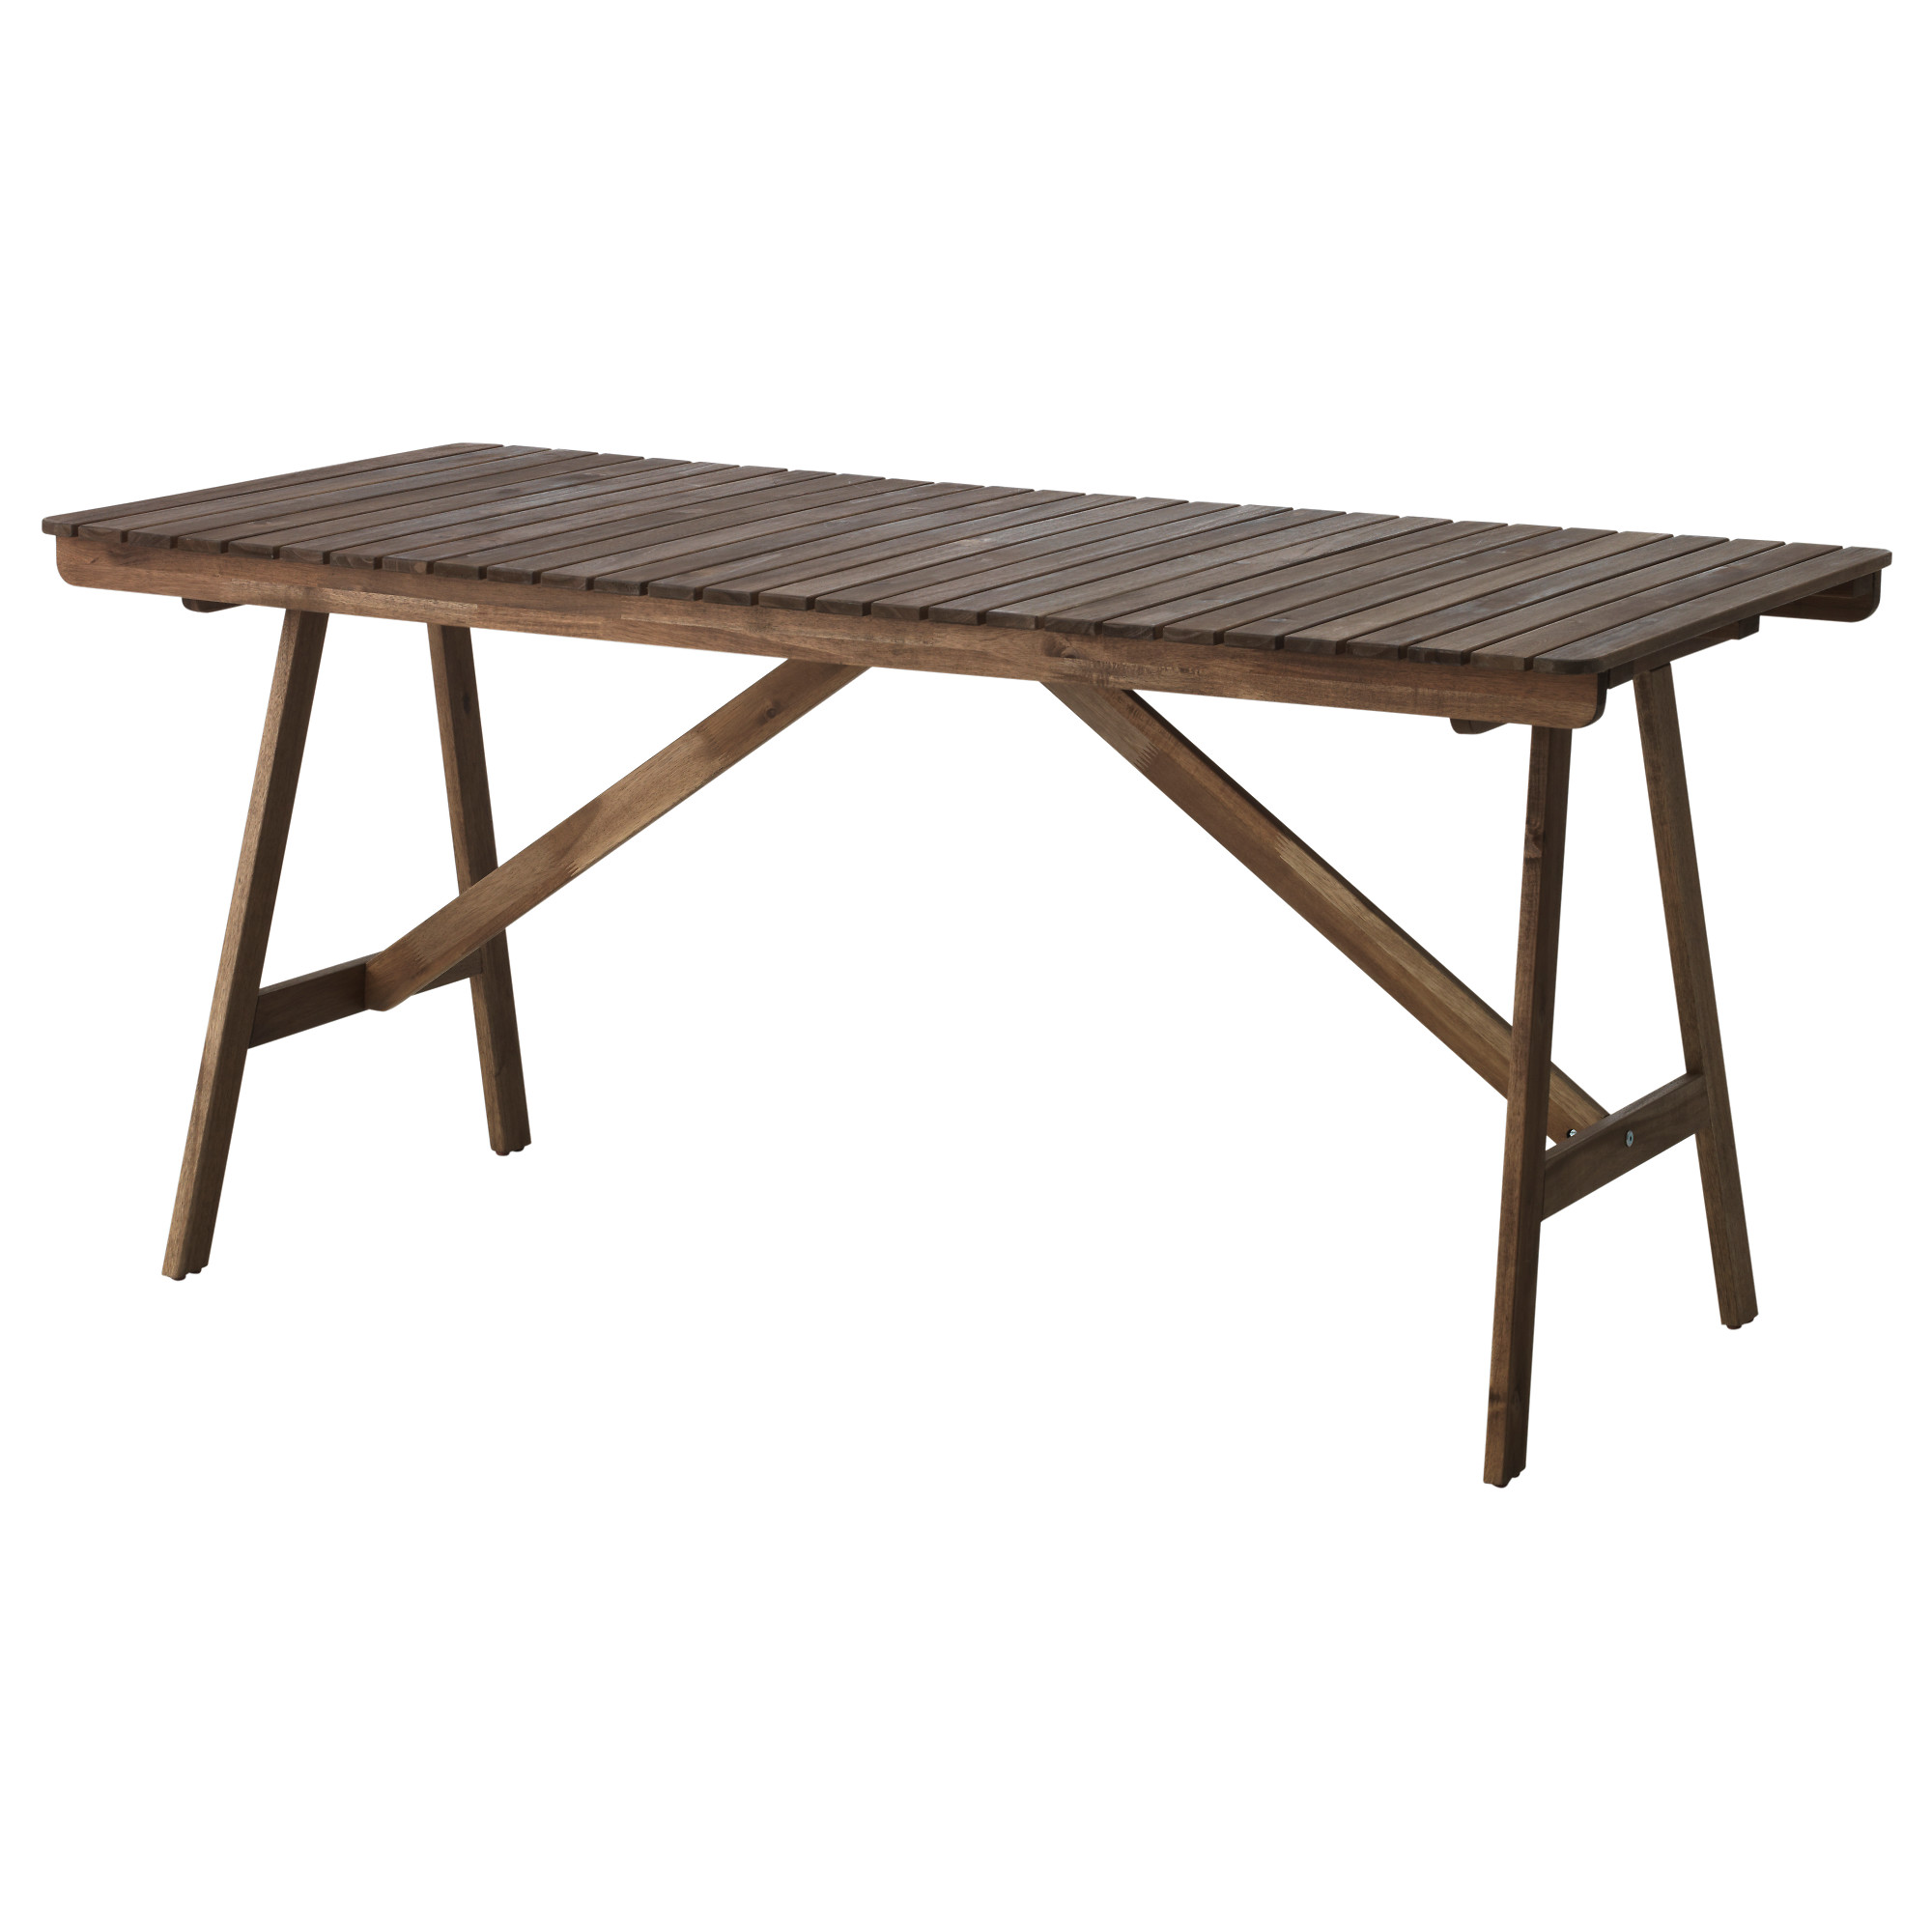 Folding Wooden Table Ikea Falholmen Table Outdoor Gray Brown Stained Home Ikea Outdoor